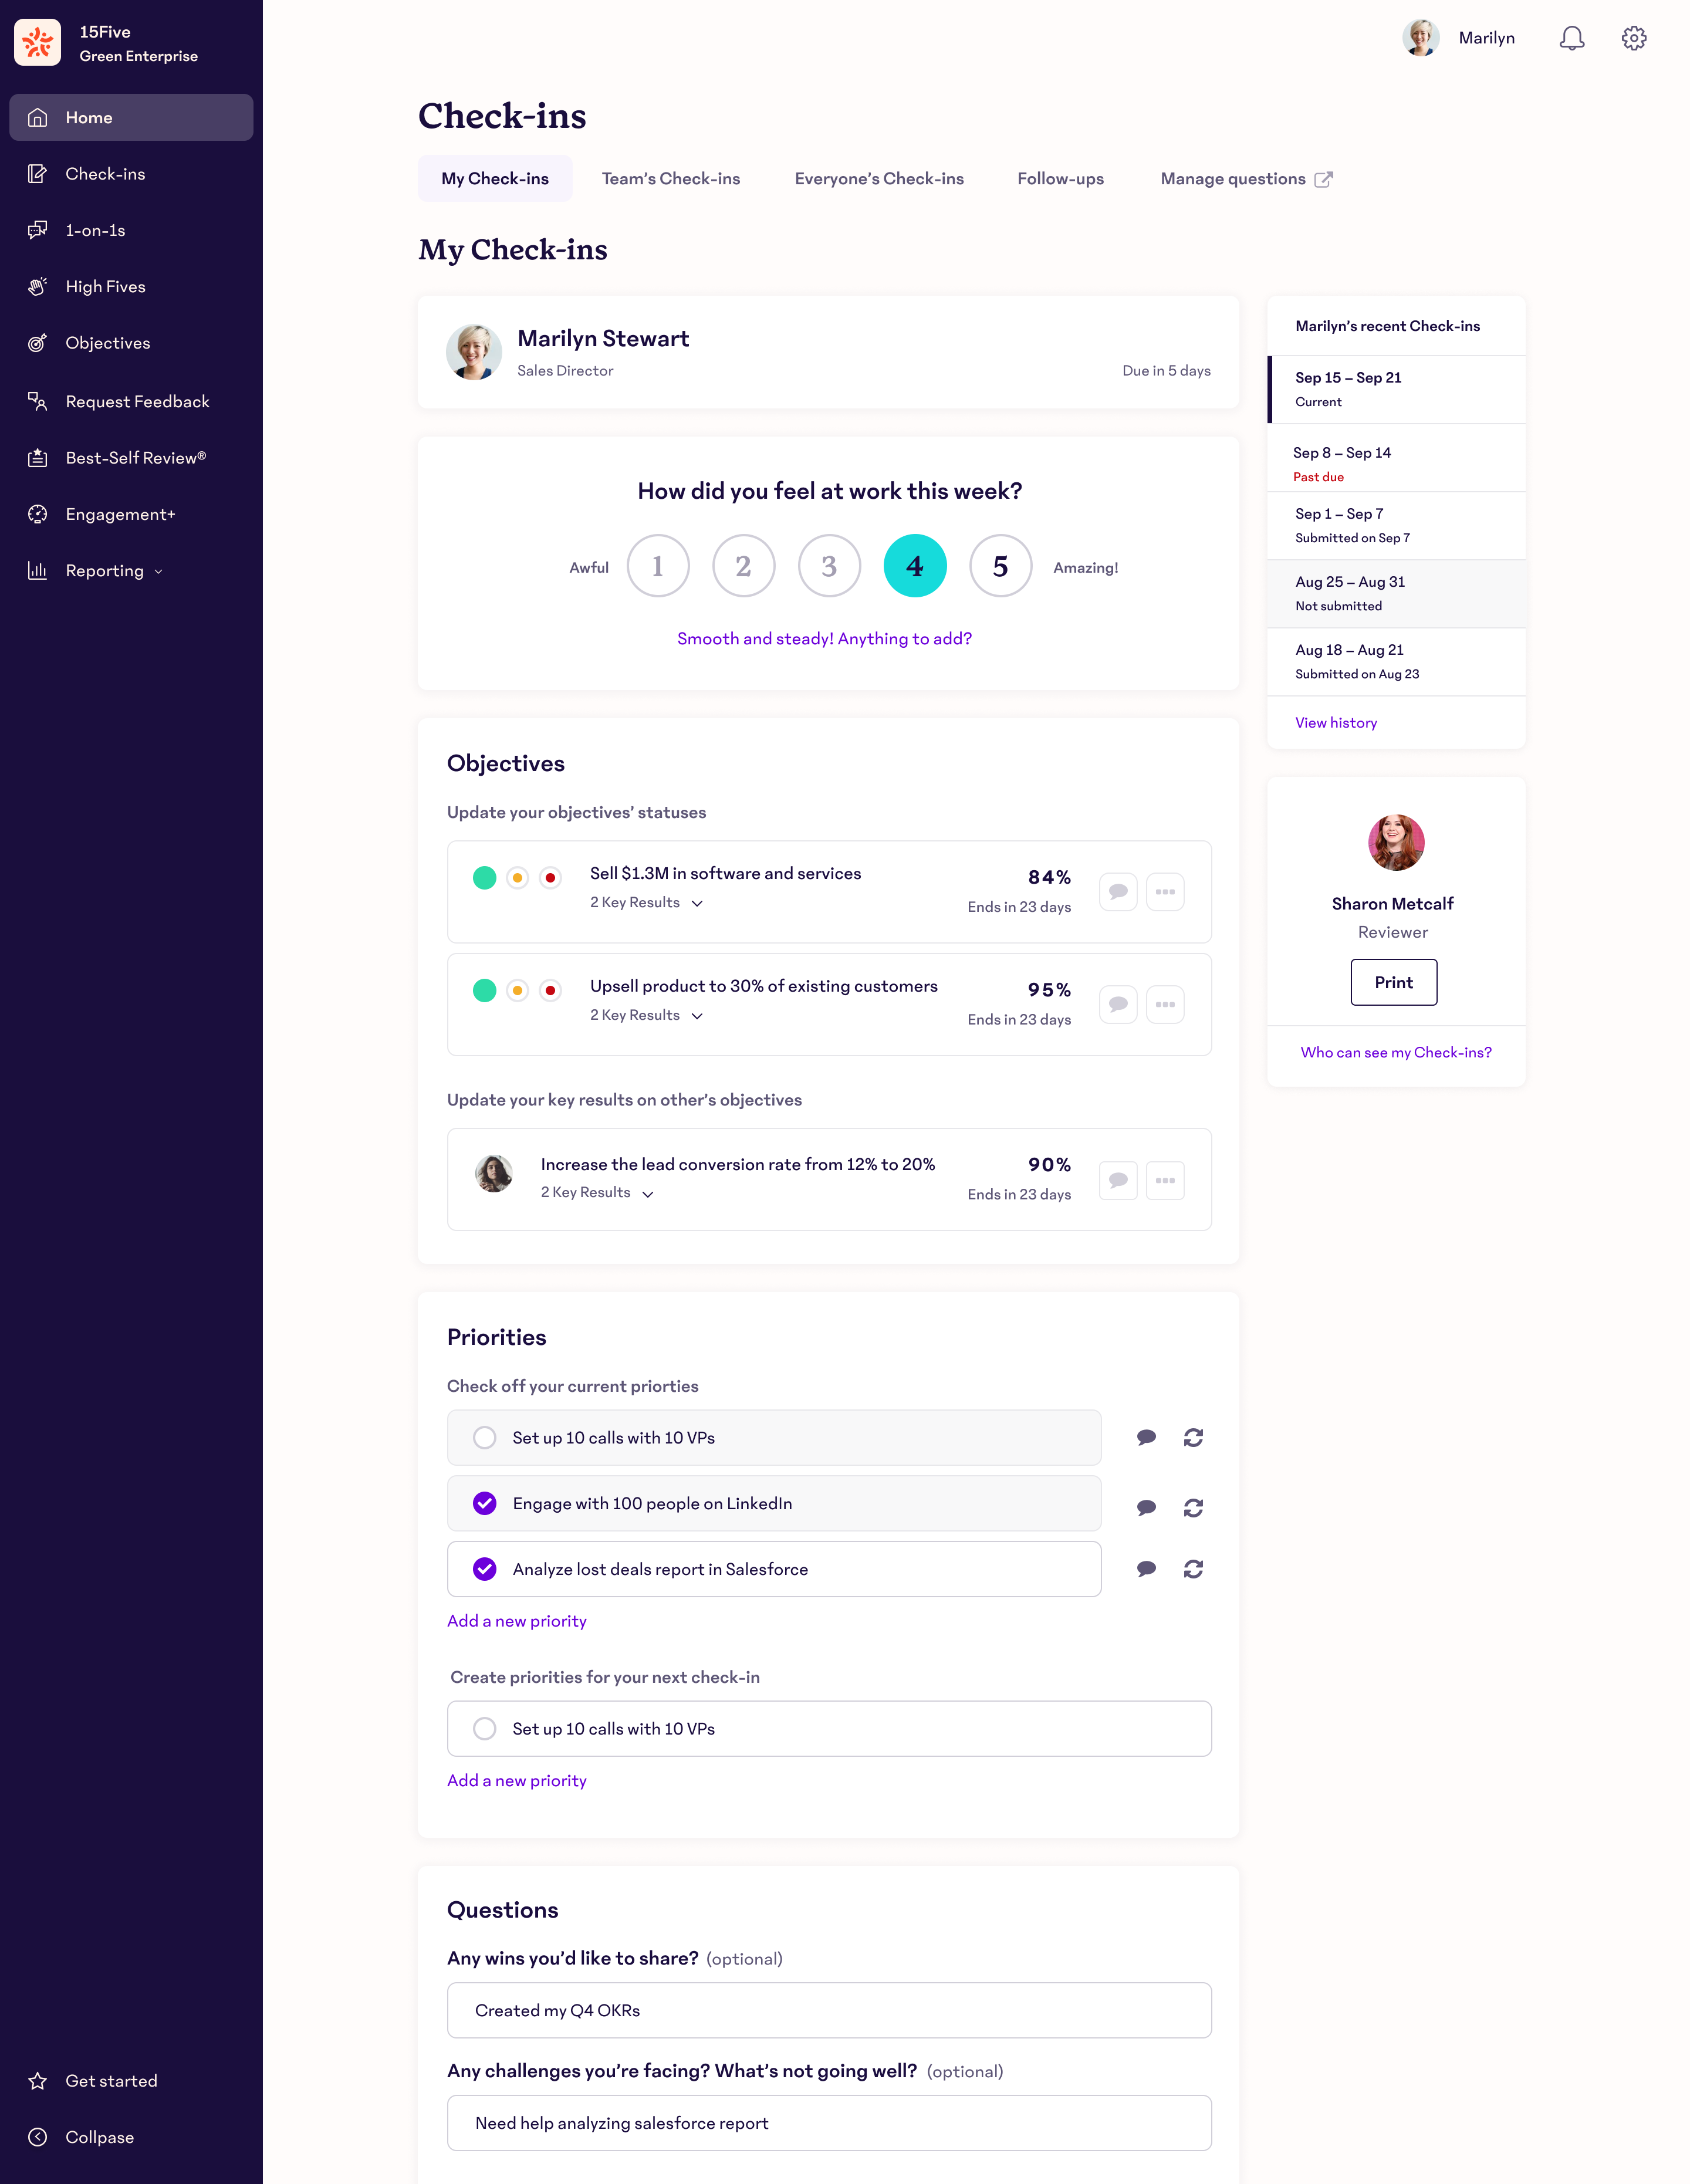 Check-in: Connect managers with their teams through regular Check-Ins that lead to actionable insights.